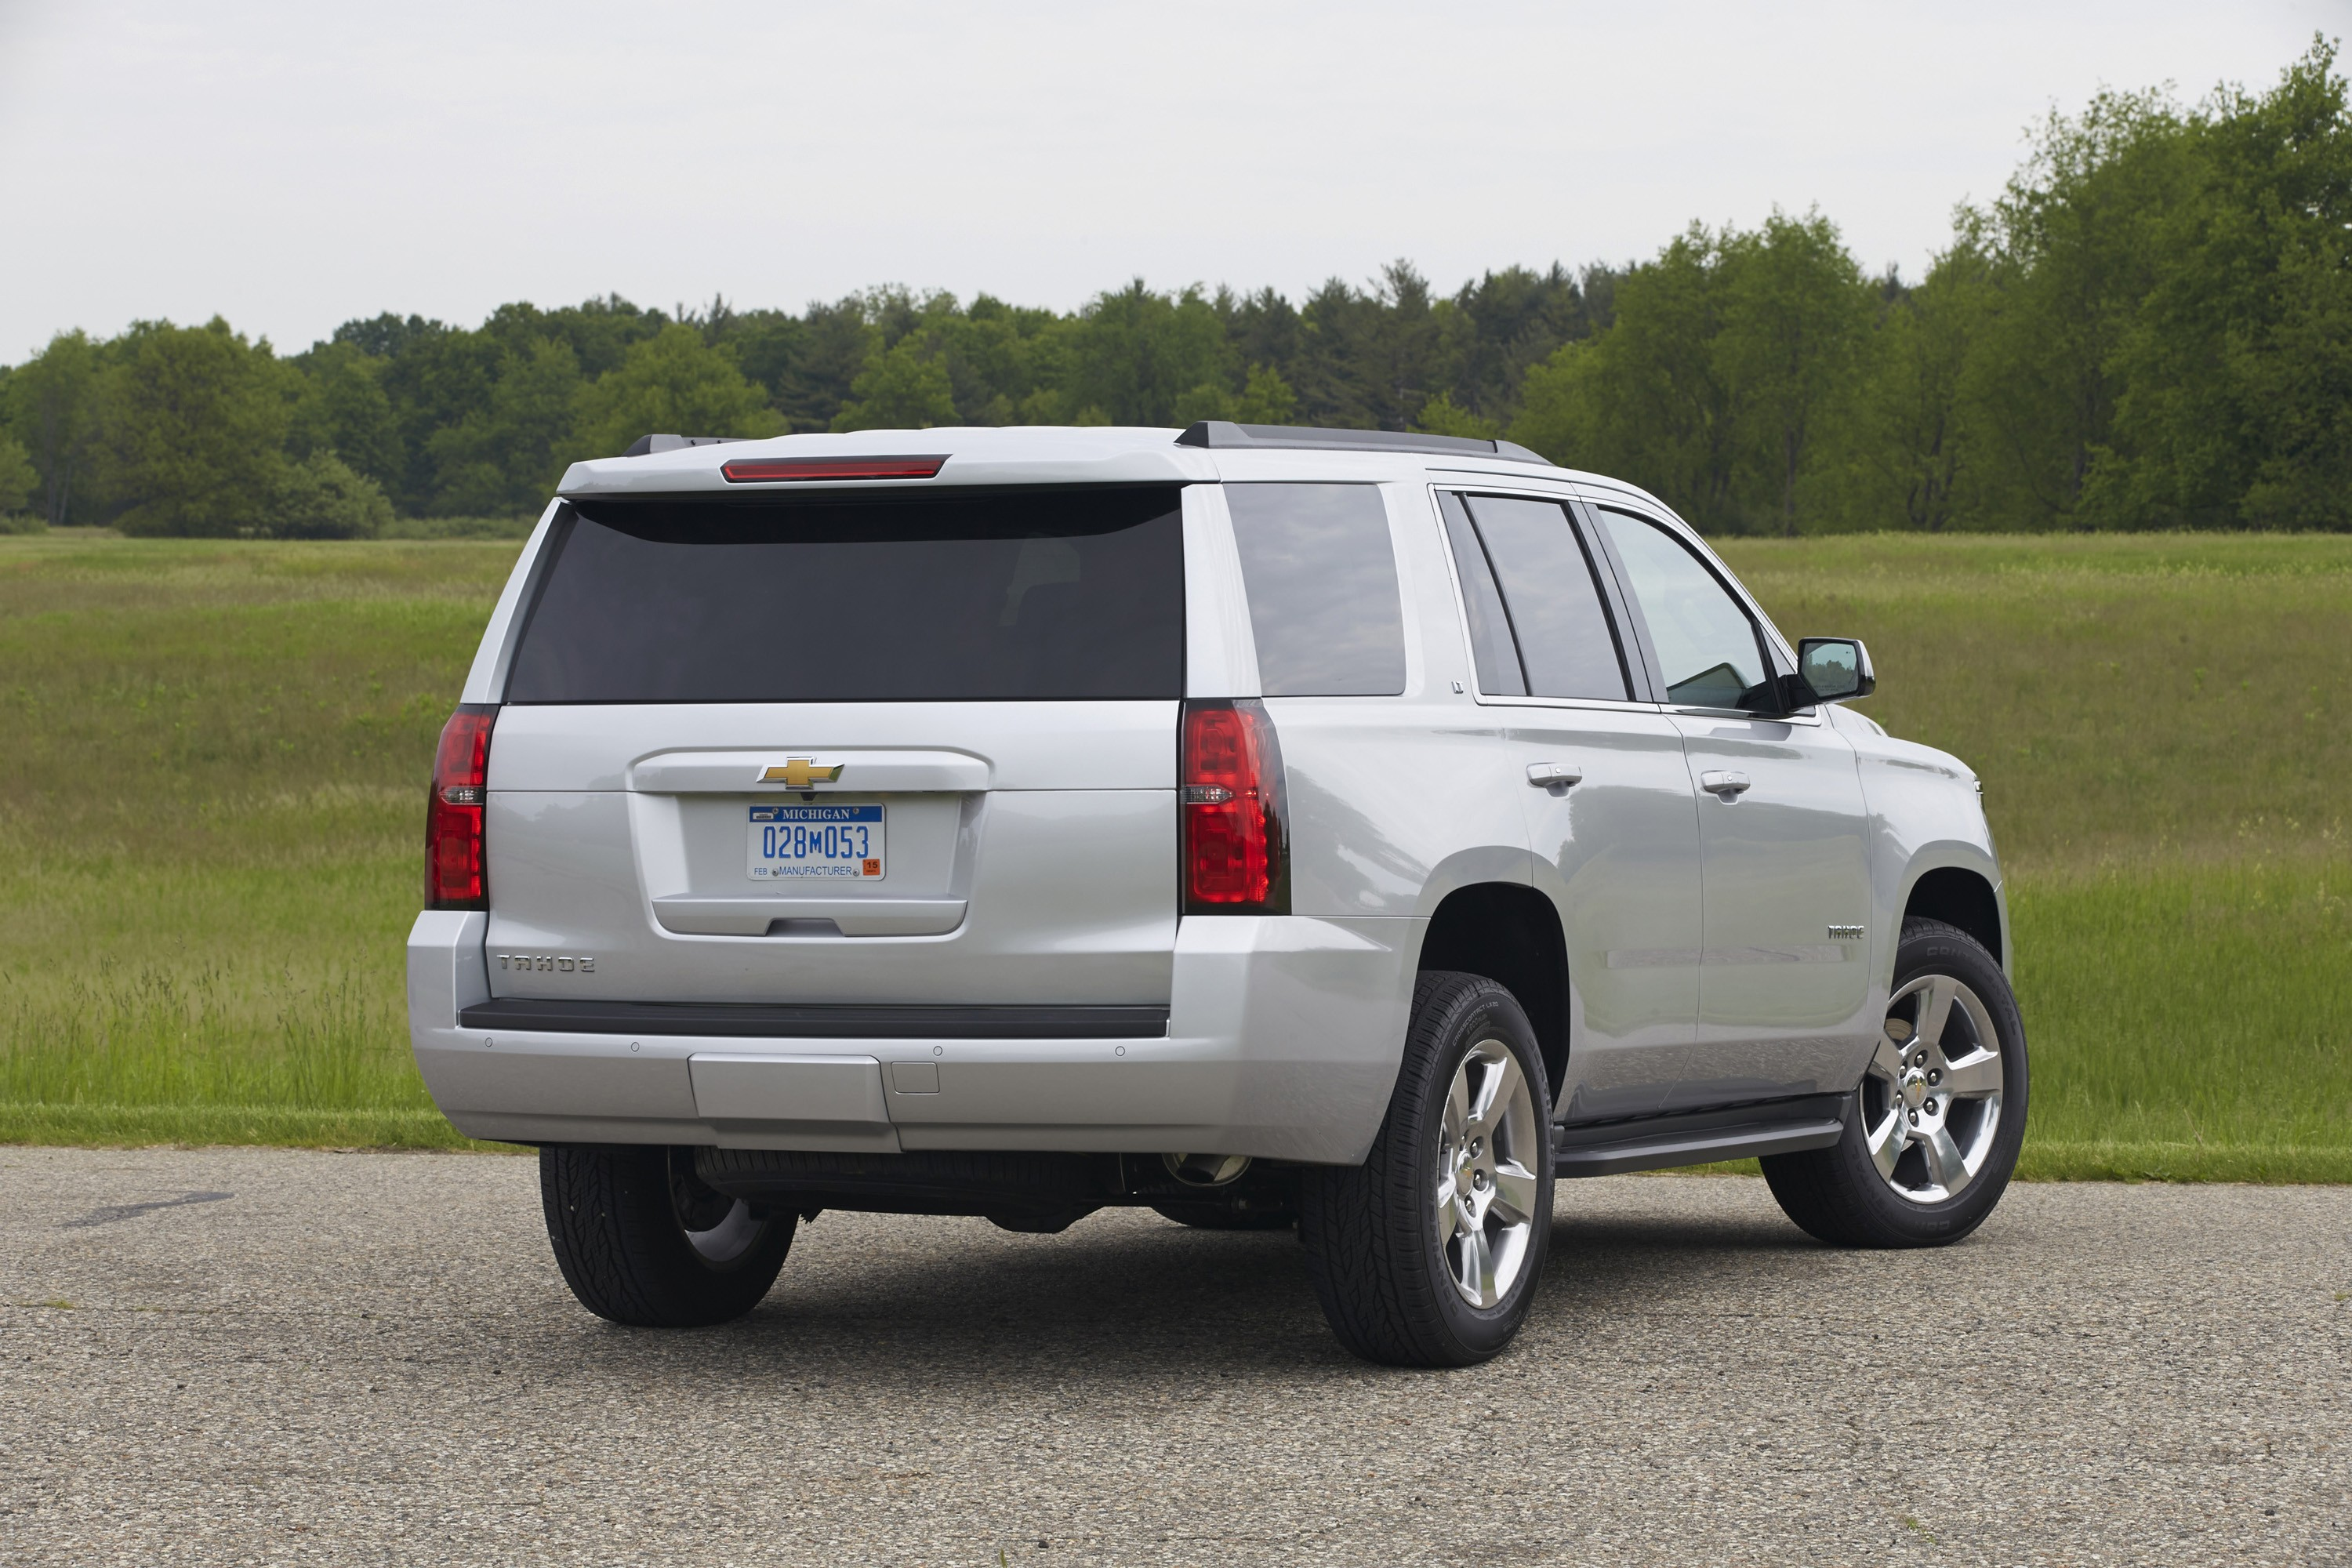 tahoe chevrolet ltz suburban vs navigator lincoln autoevolution specs lt edmunds package interior